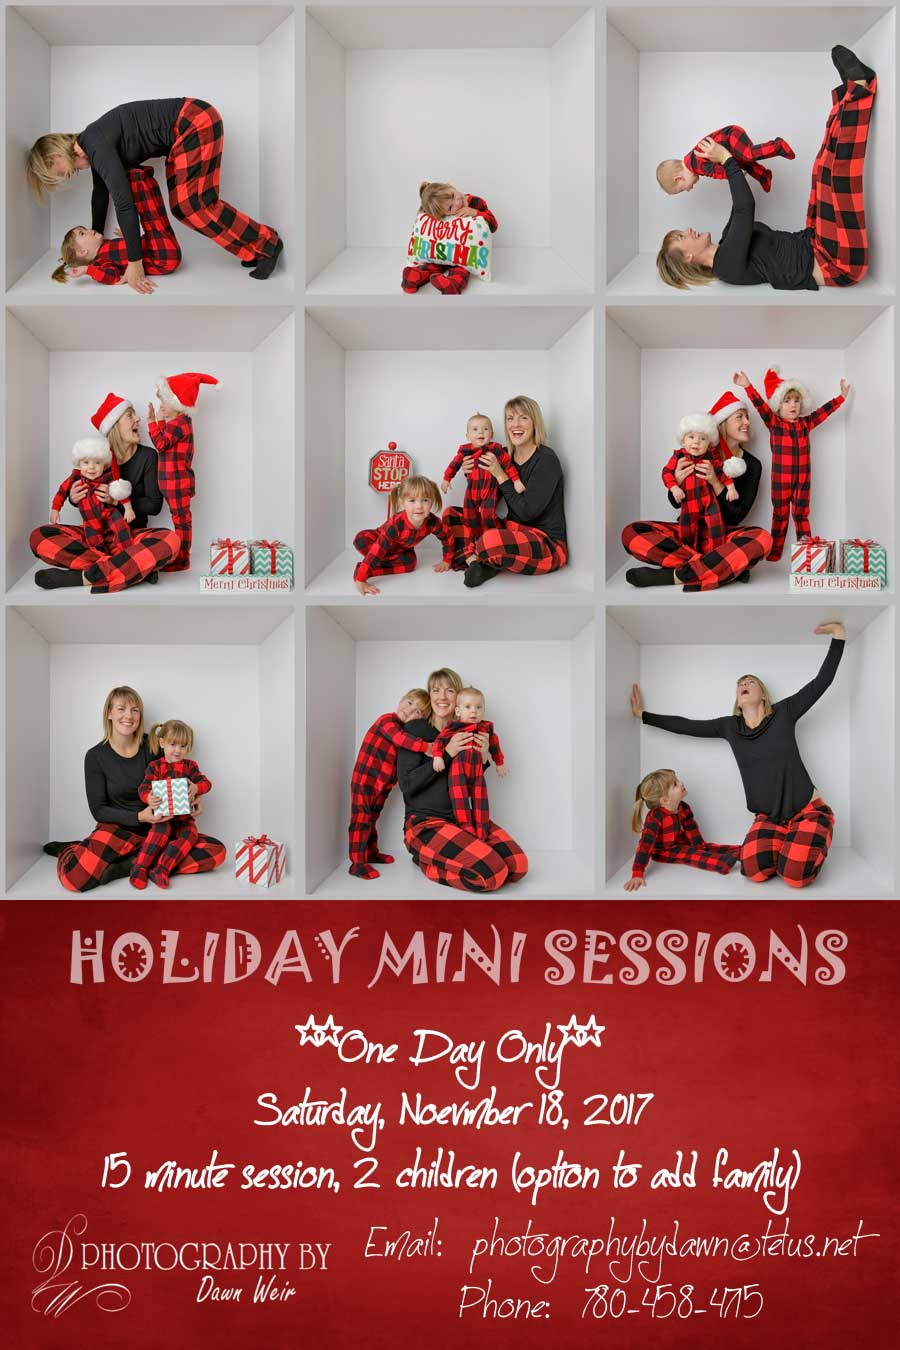 edmonton holiday mini sessions 2017